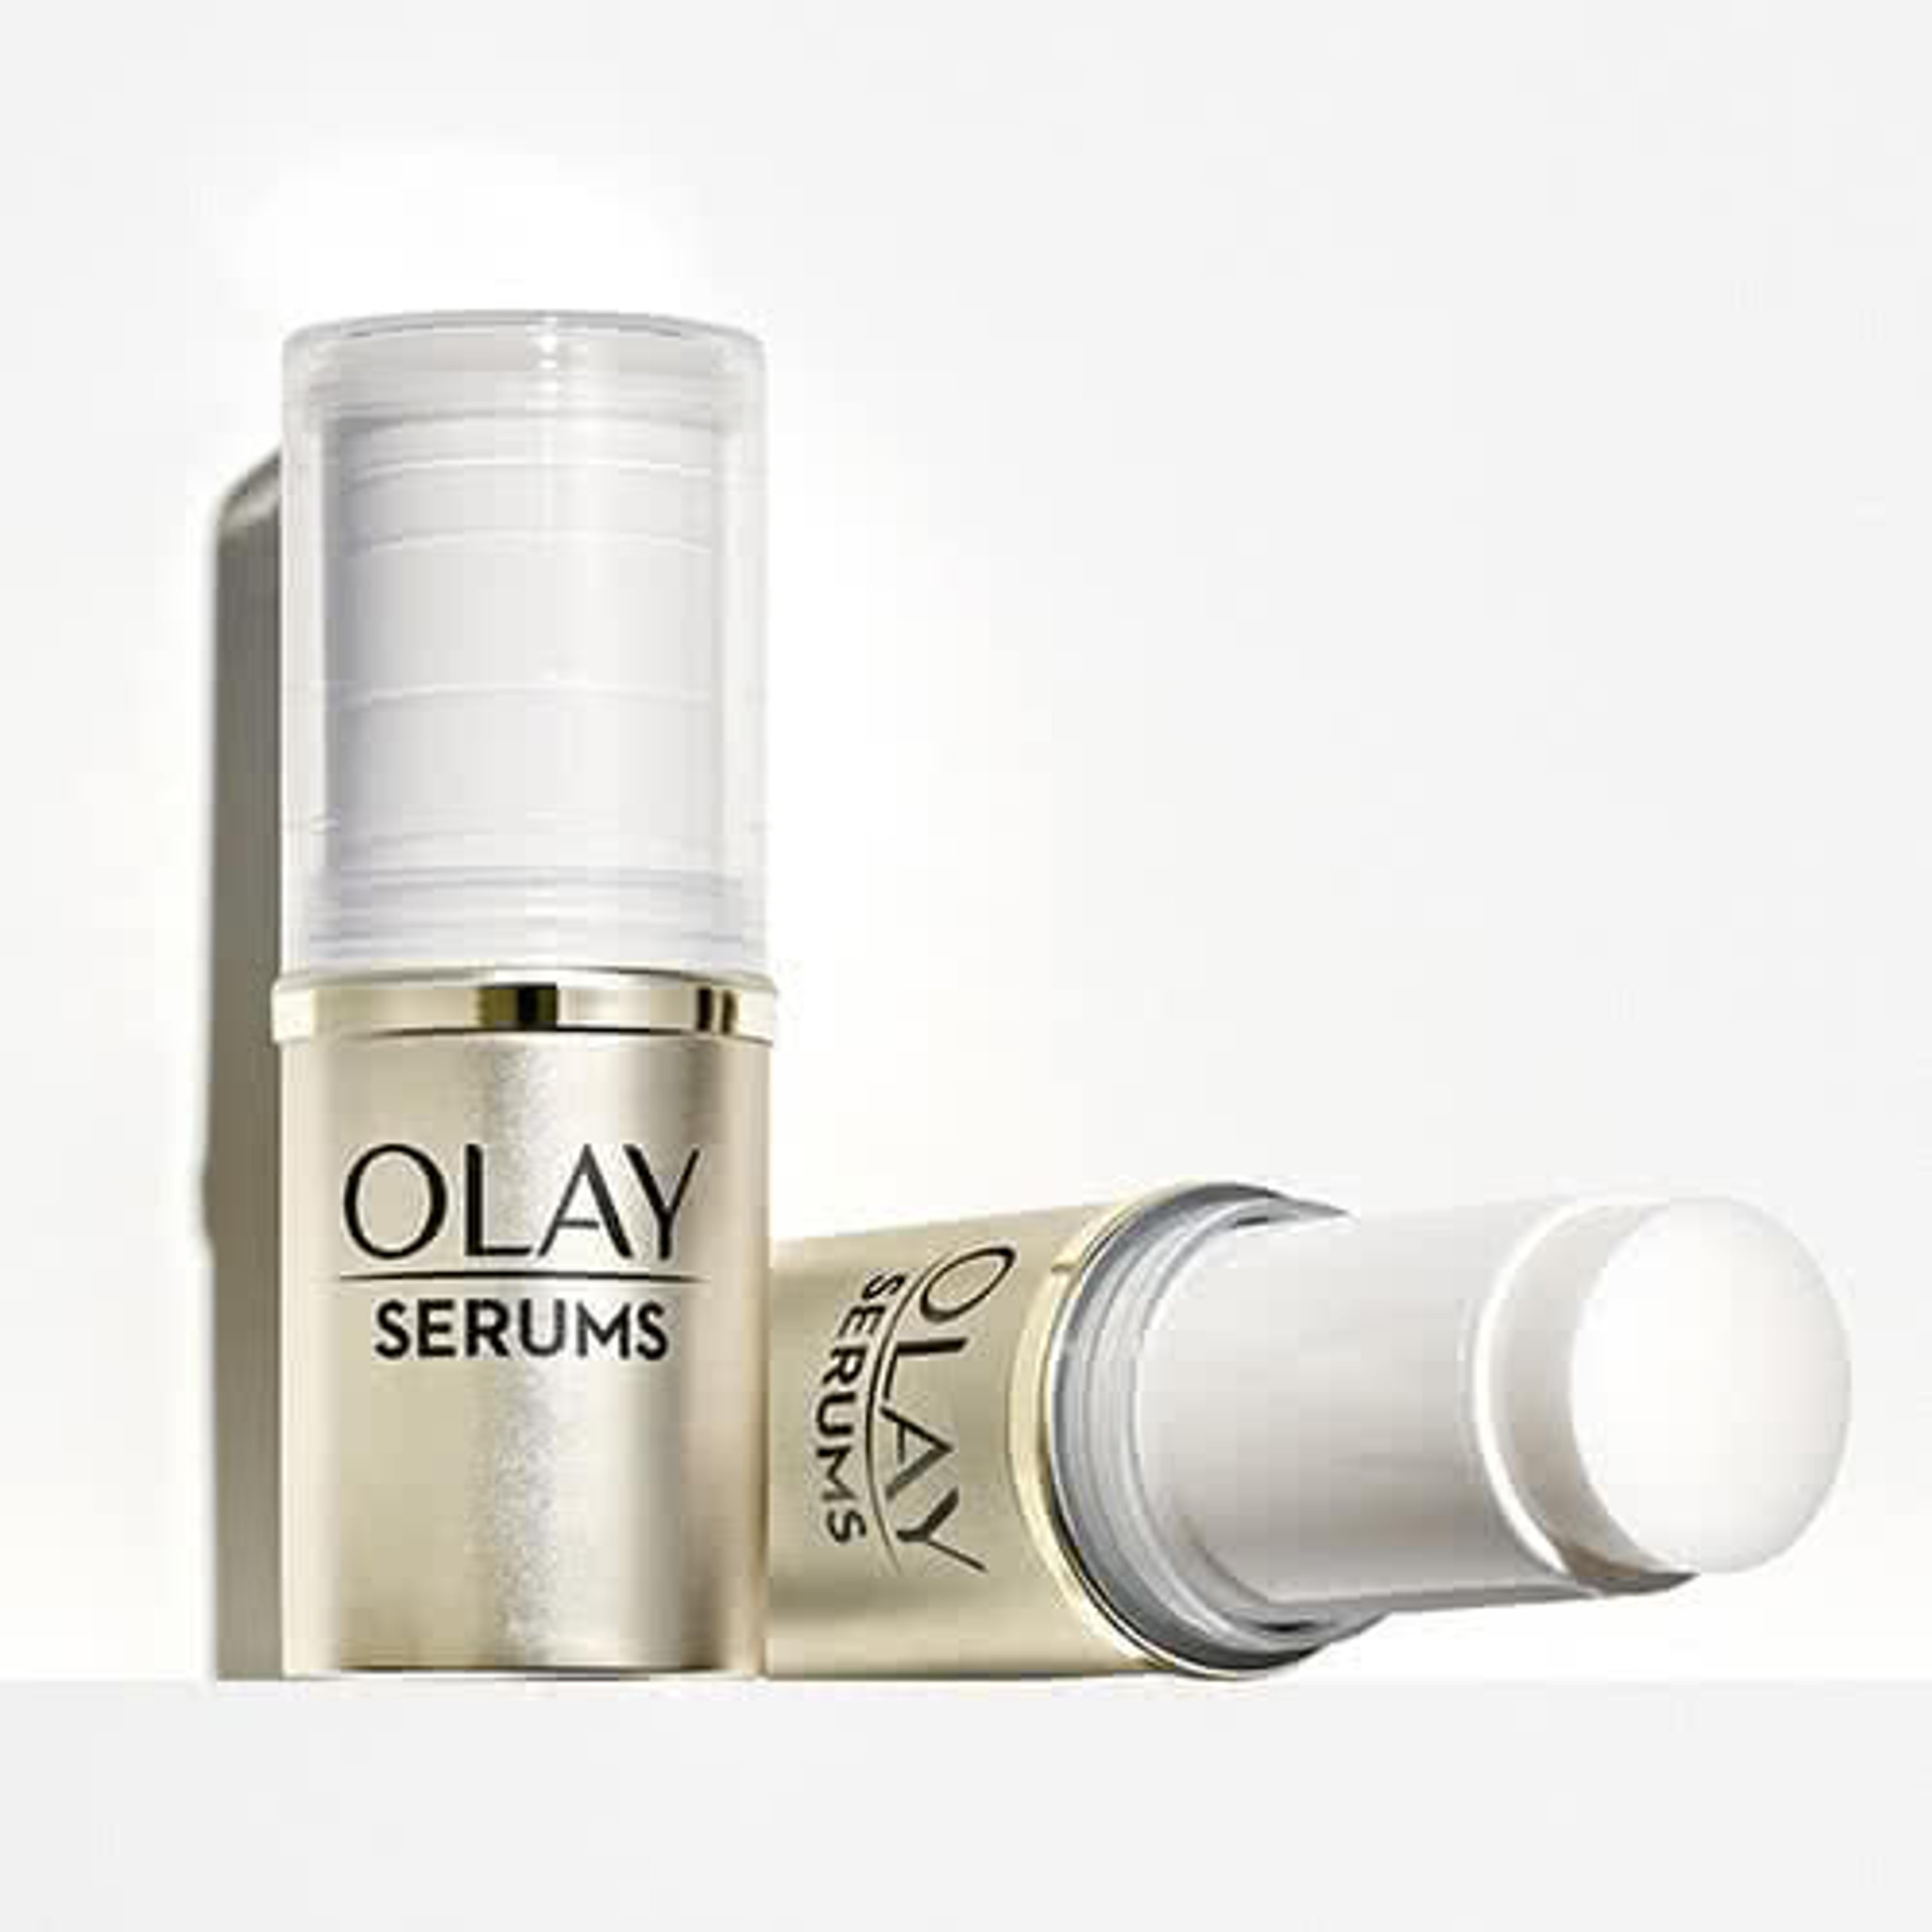 olay - Serums Pressed Serum Stick Brightening